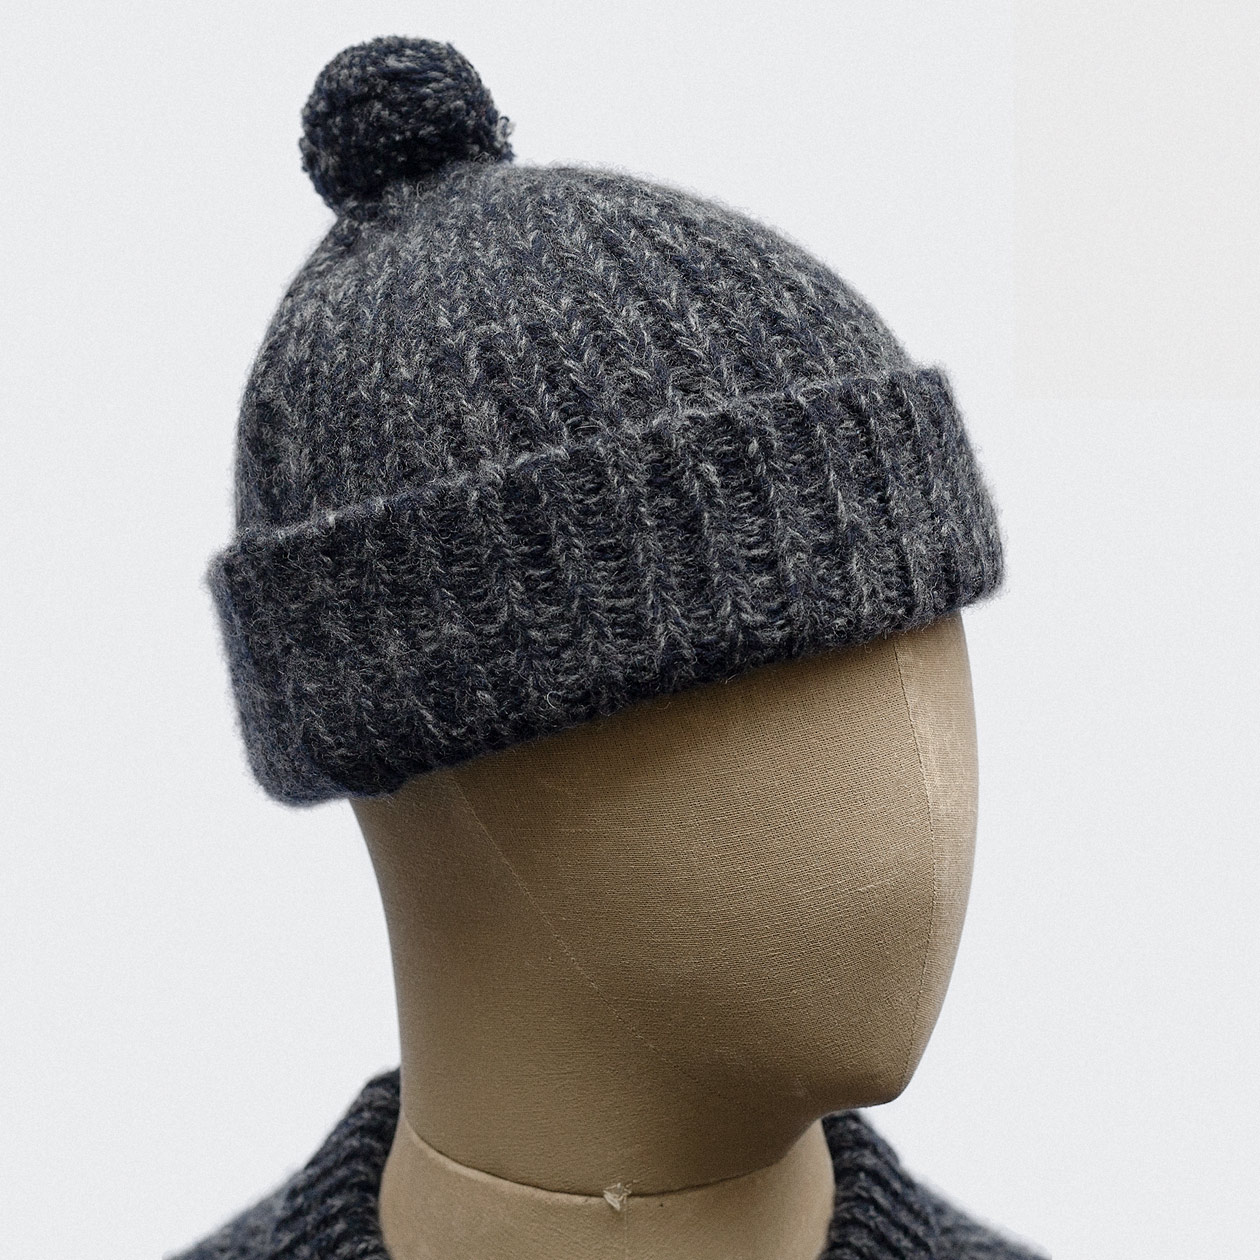 f4206929fb7 Bobble hat in lambswool tuck-stitch in navy-grey — S.E.H Kelly ...